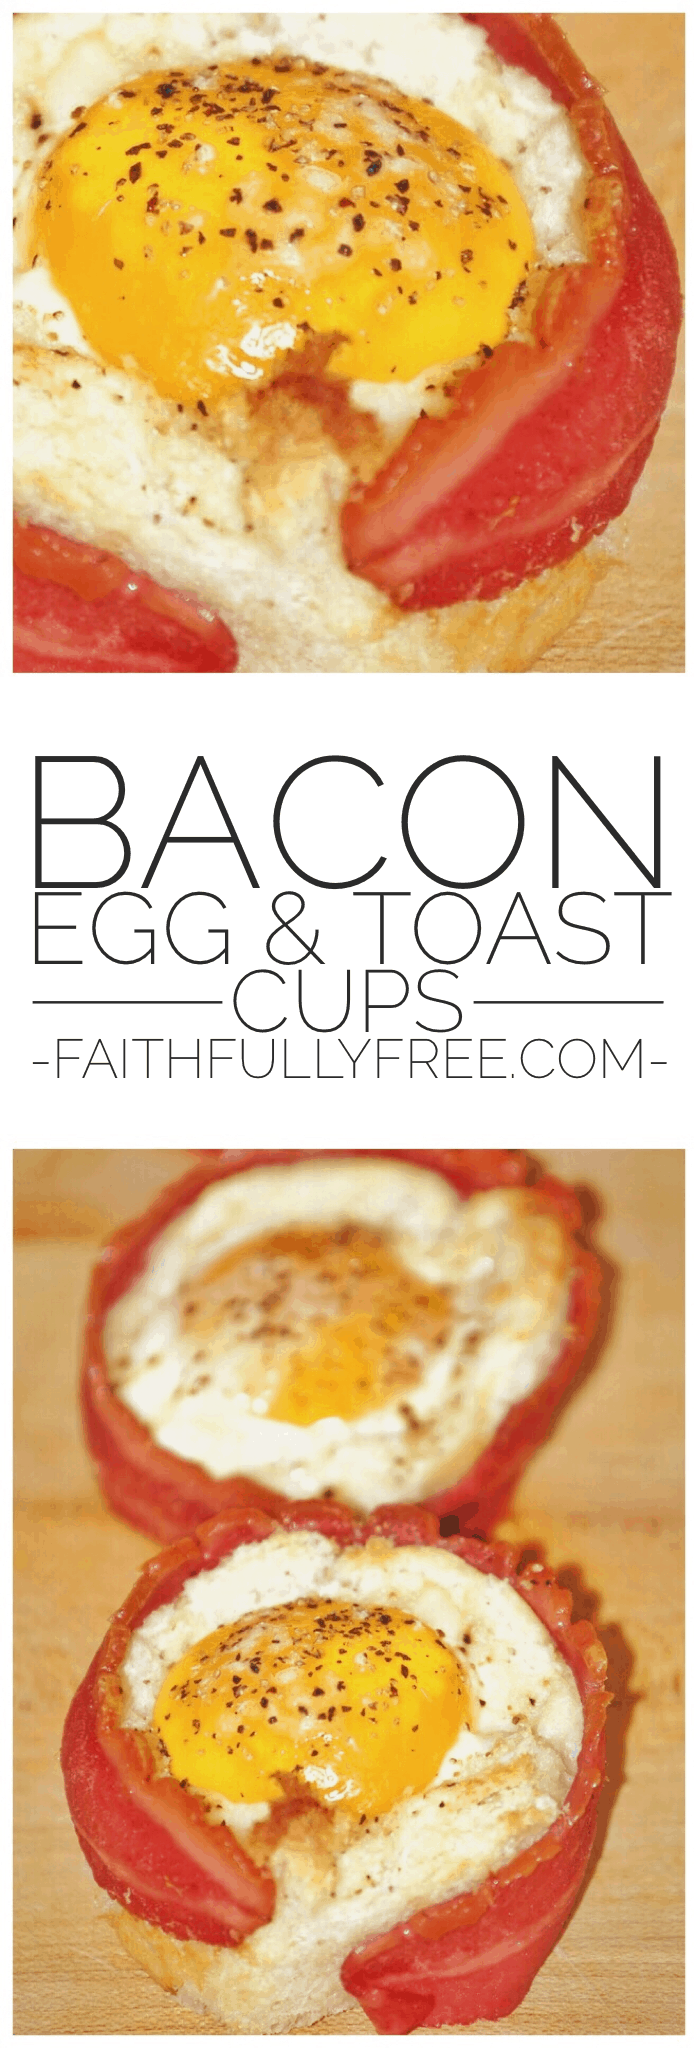 Bacon, Egg and Toast Cups | Faithfully Free